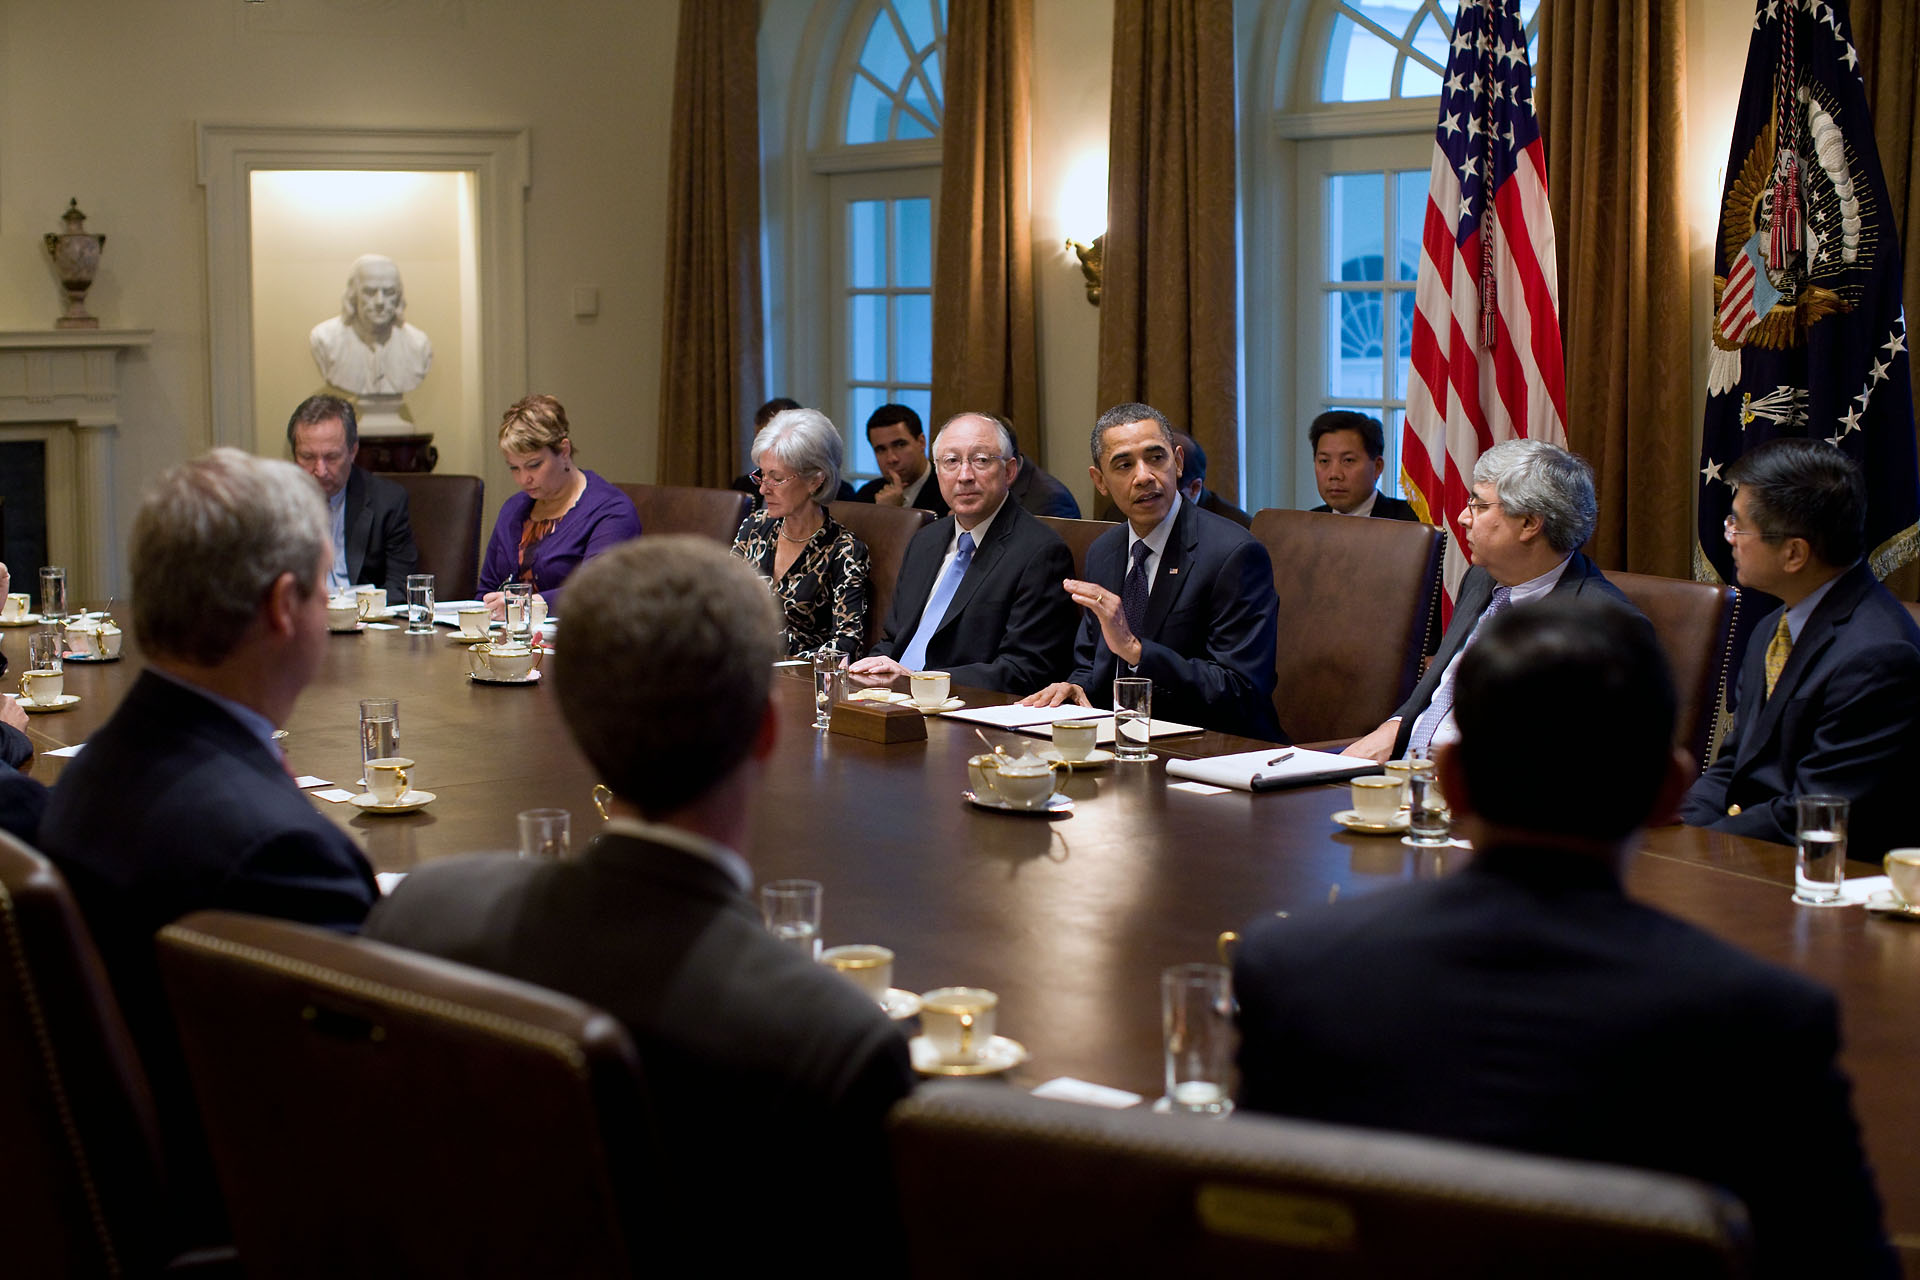 Obama And Cabinet President Obama Invites Bipartisan Meeting On The Economy Not